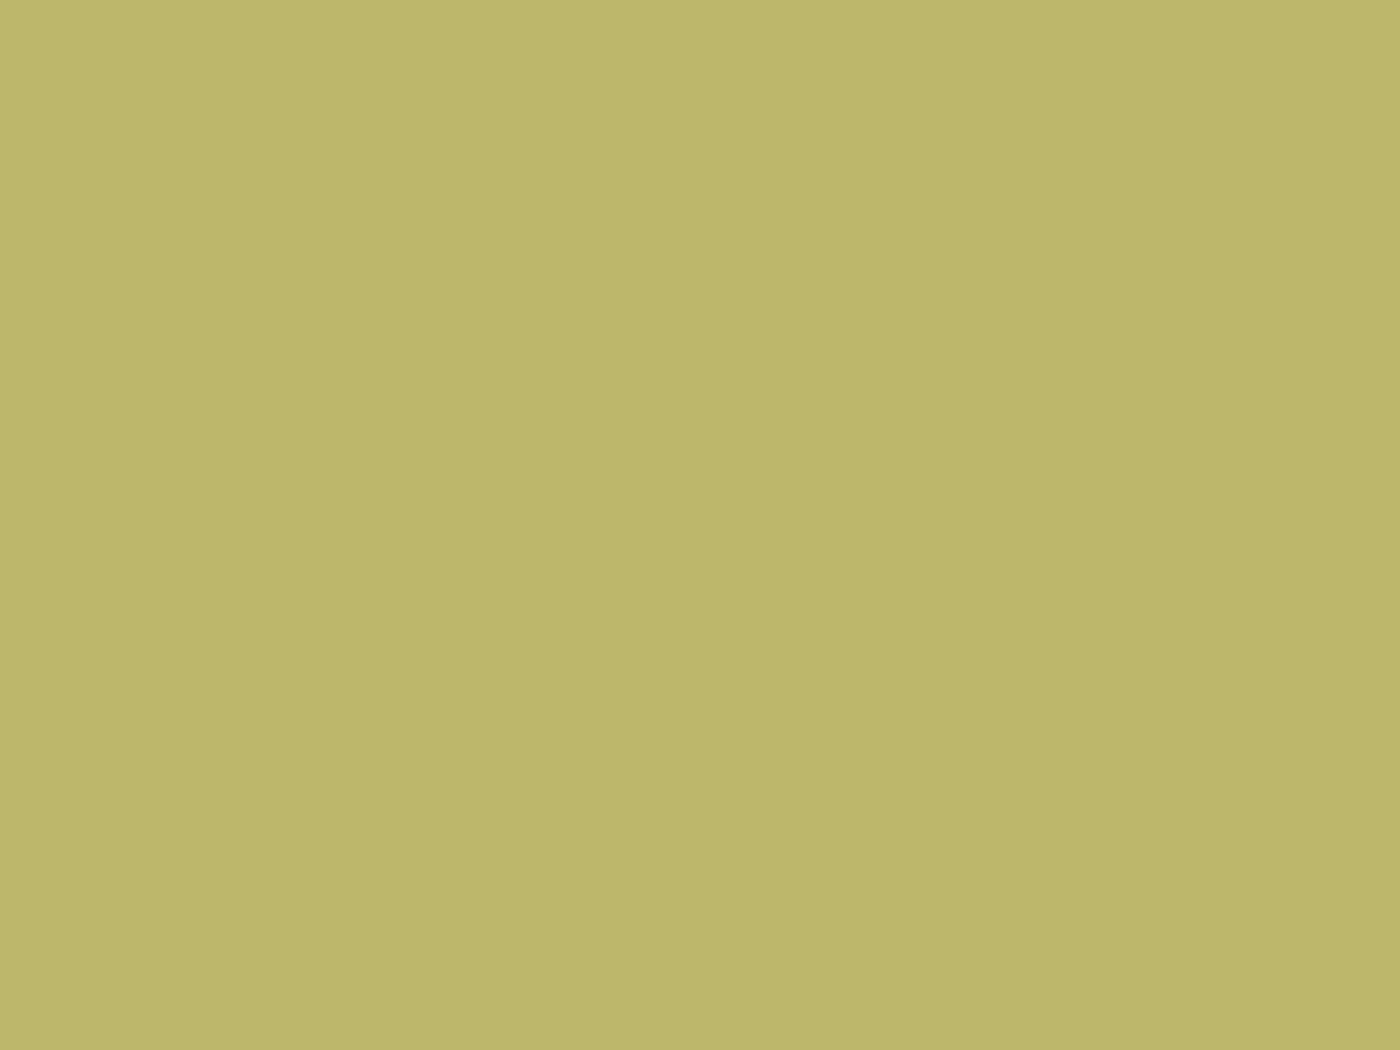 1400x1050 Dark Khaki Solid Color Background